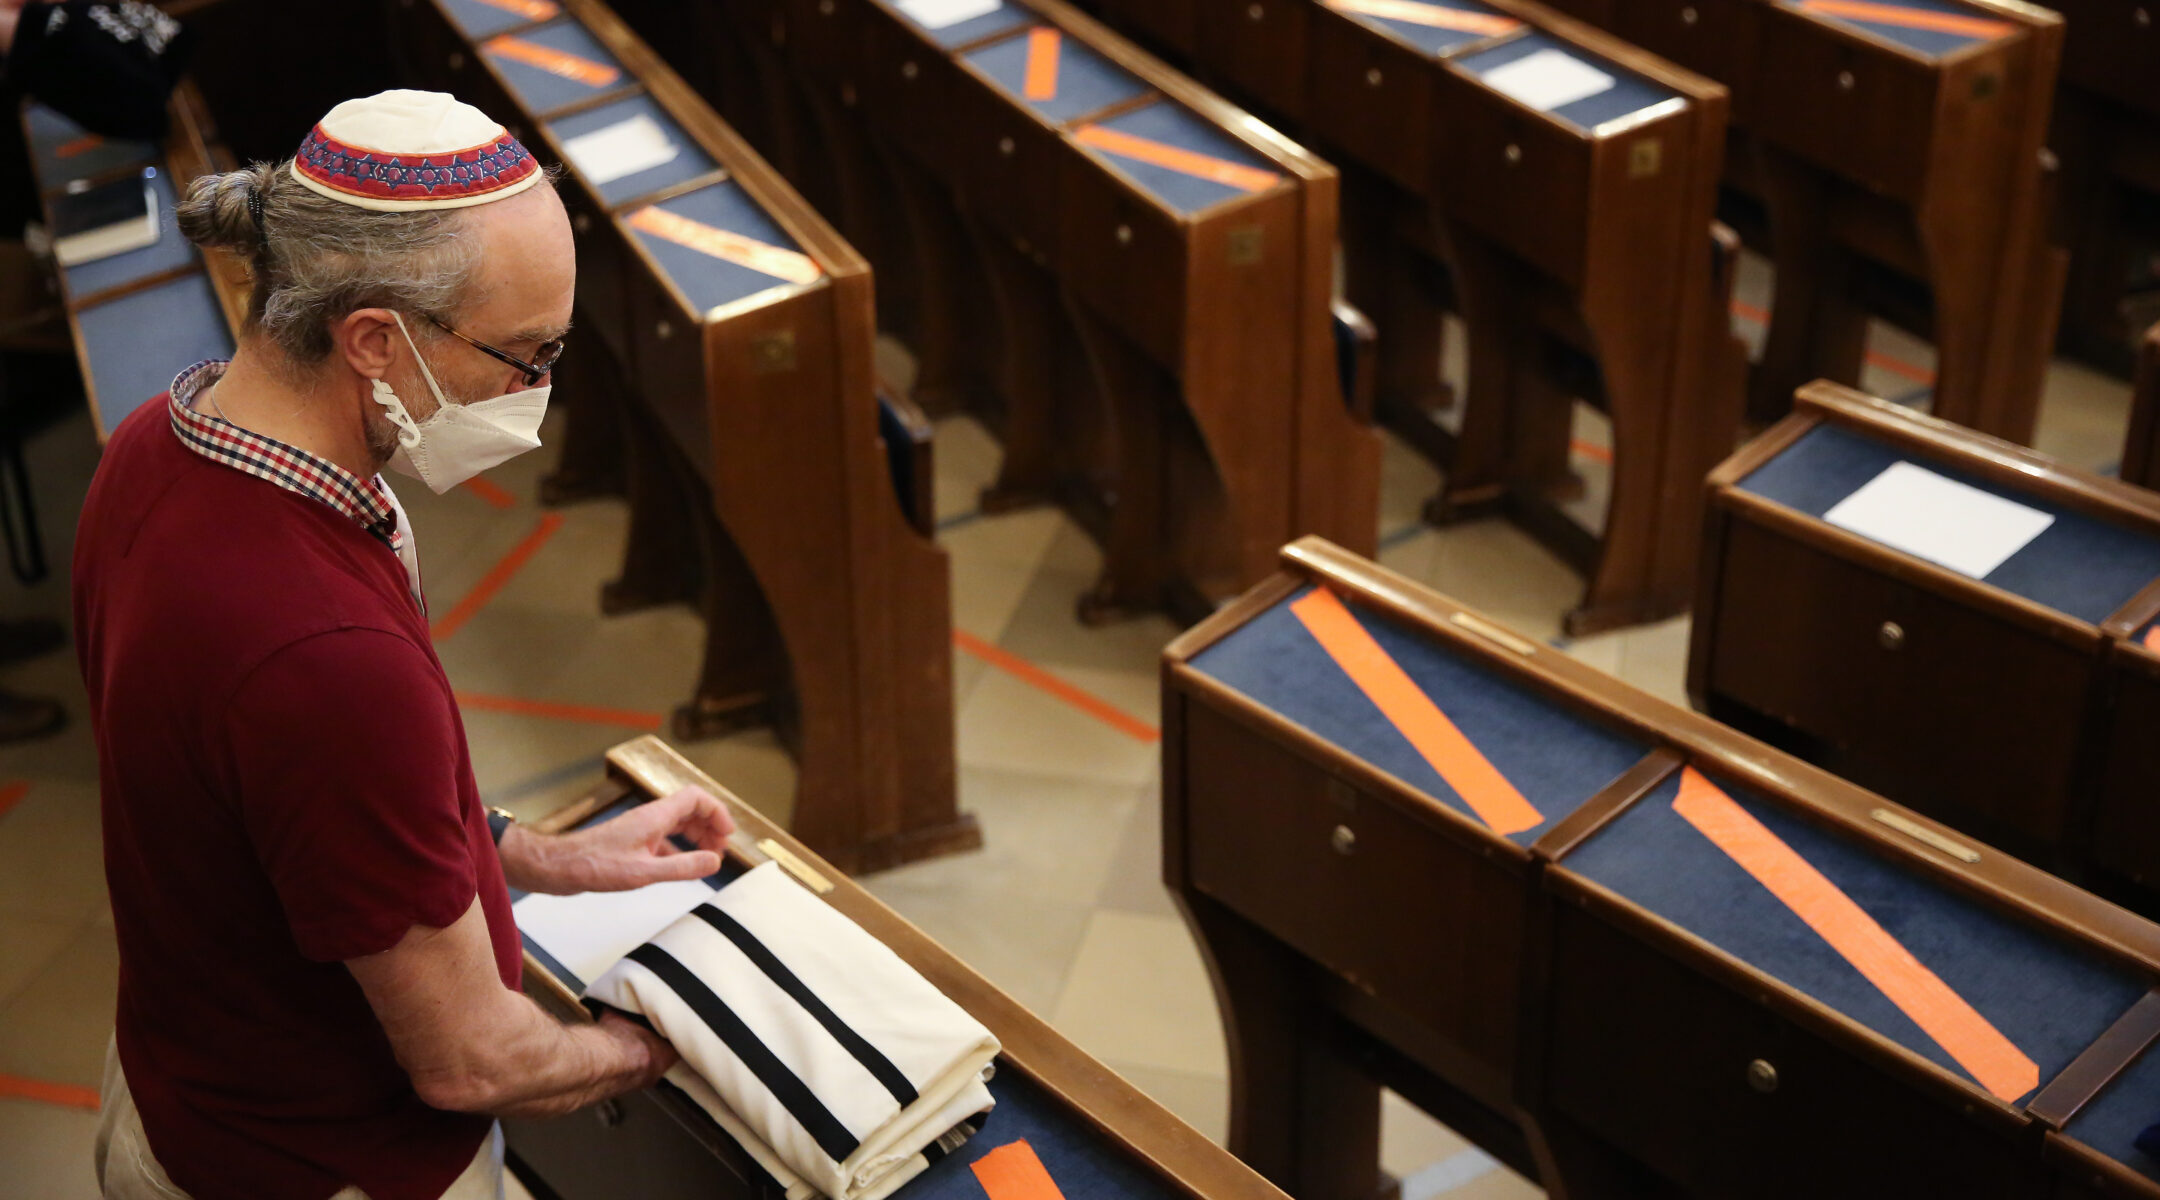 A synagogue-goer packs up his tallit, or prayer shawl, after services in Vienna, Austria, in July 2021. (Photo/JTA-Adam Berry-Getty Images)